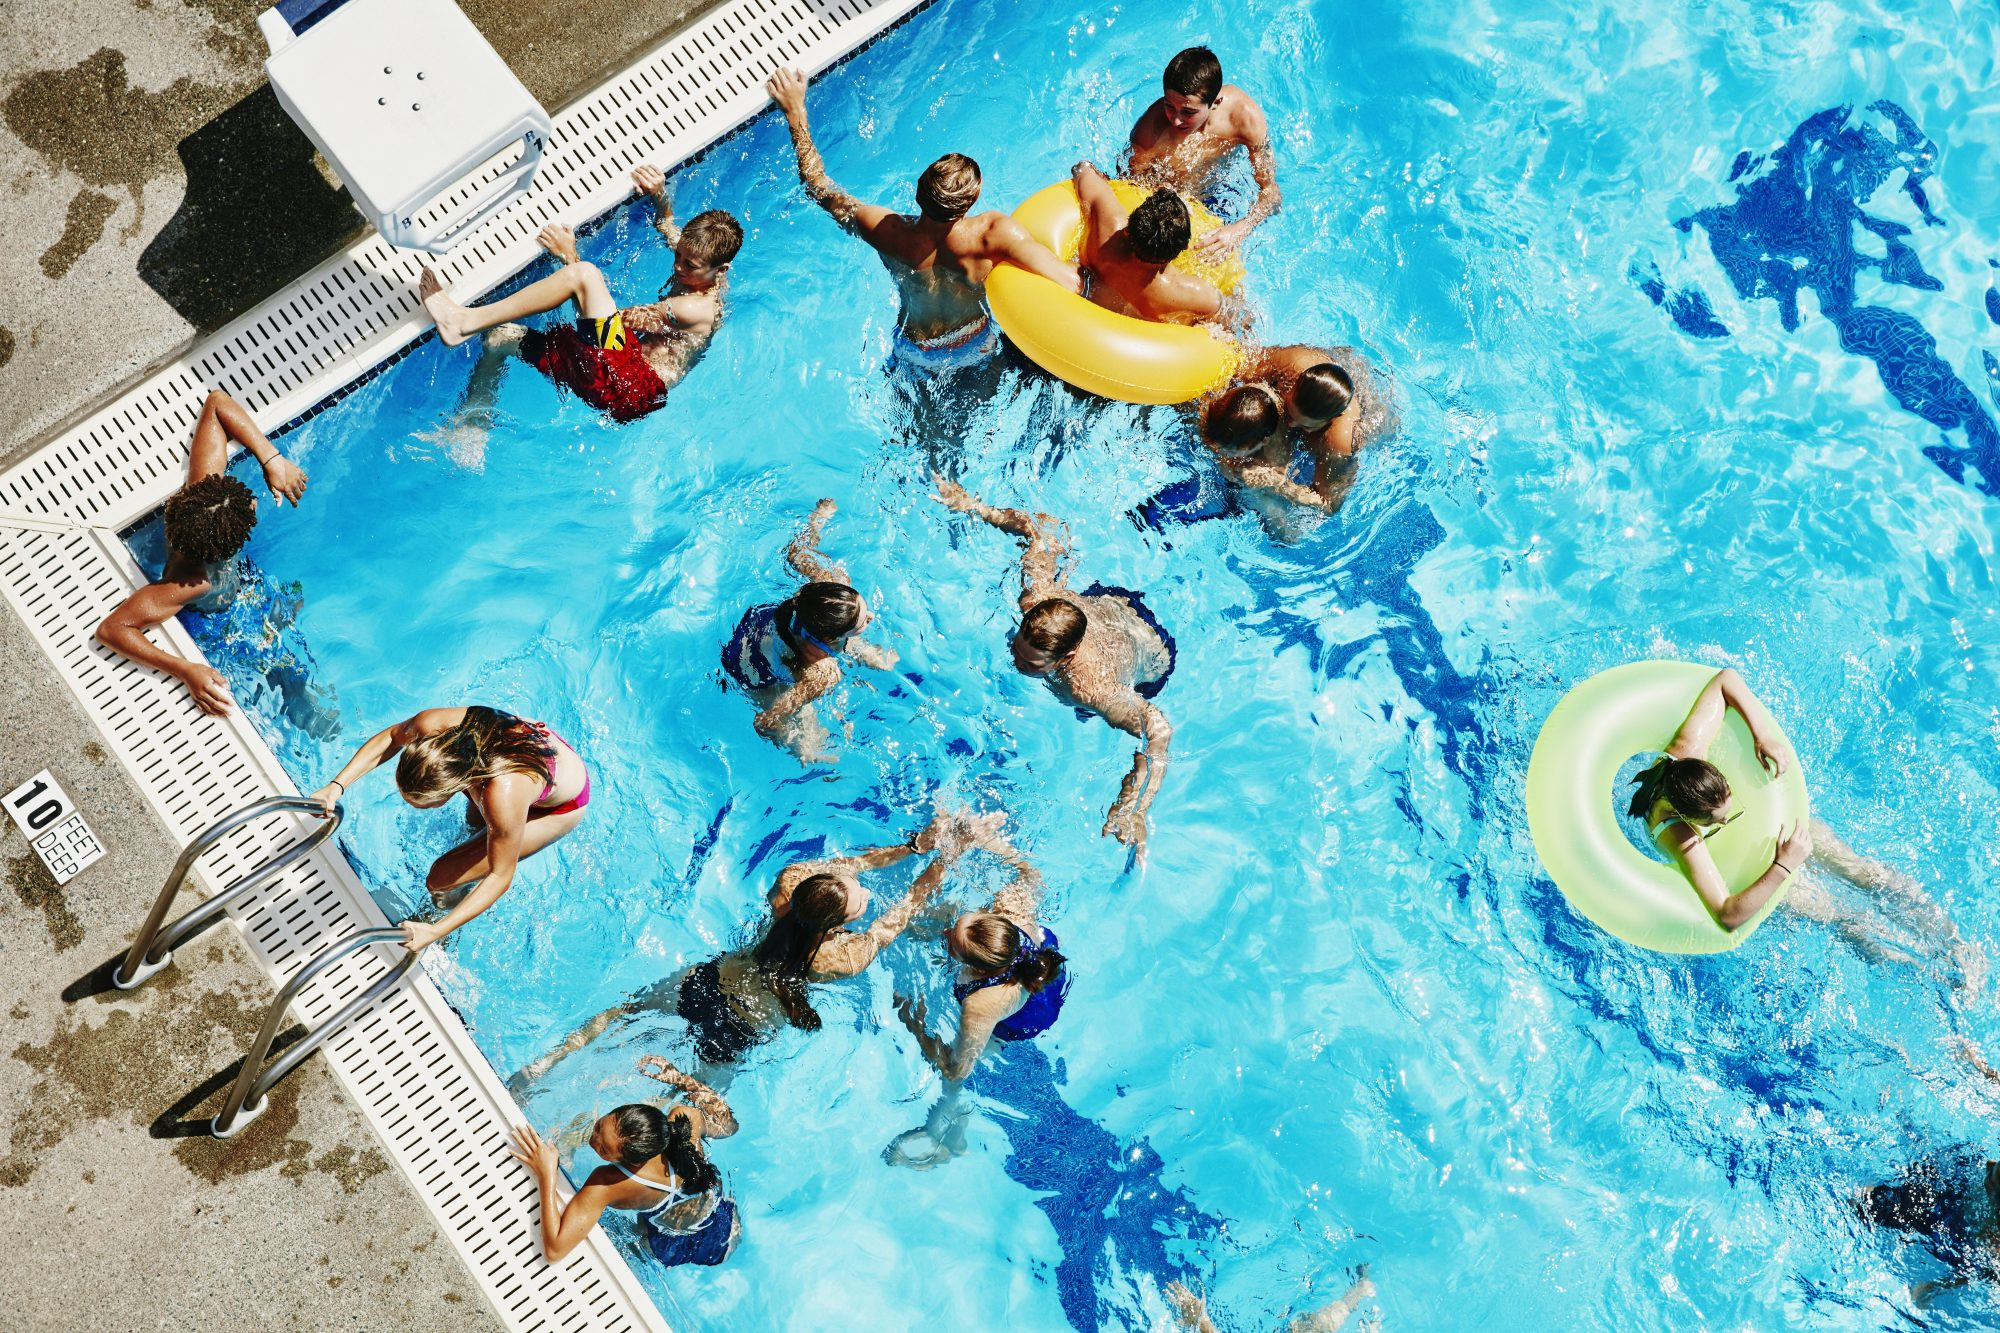 Parasites In The Pool? CDC Says Cases Are On The Rise